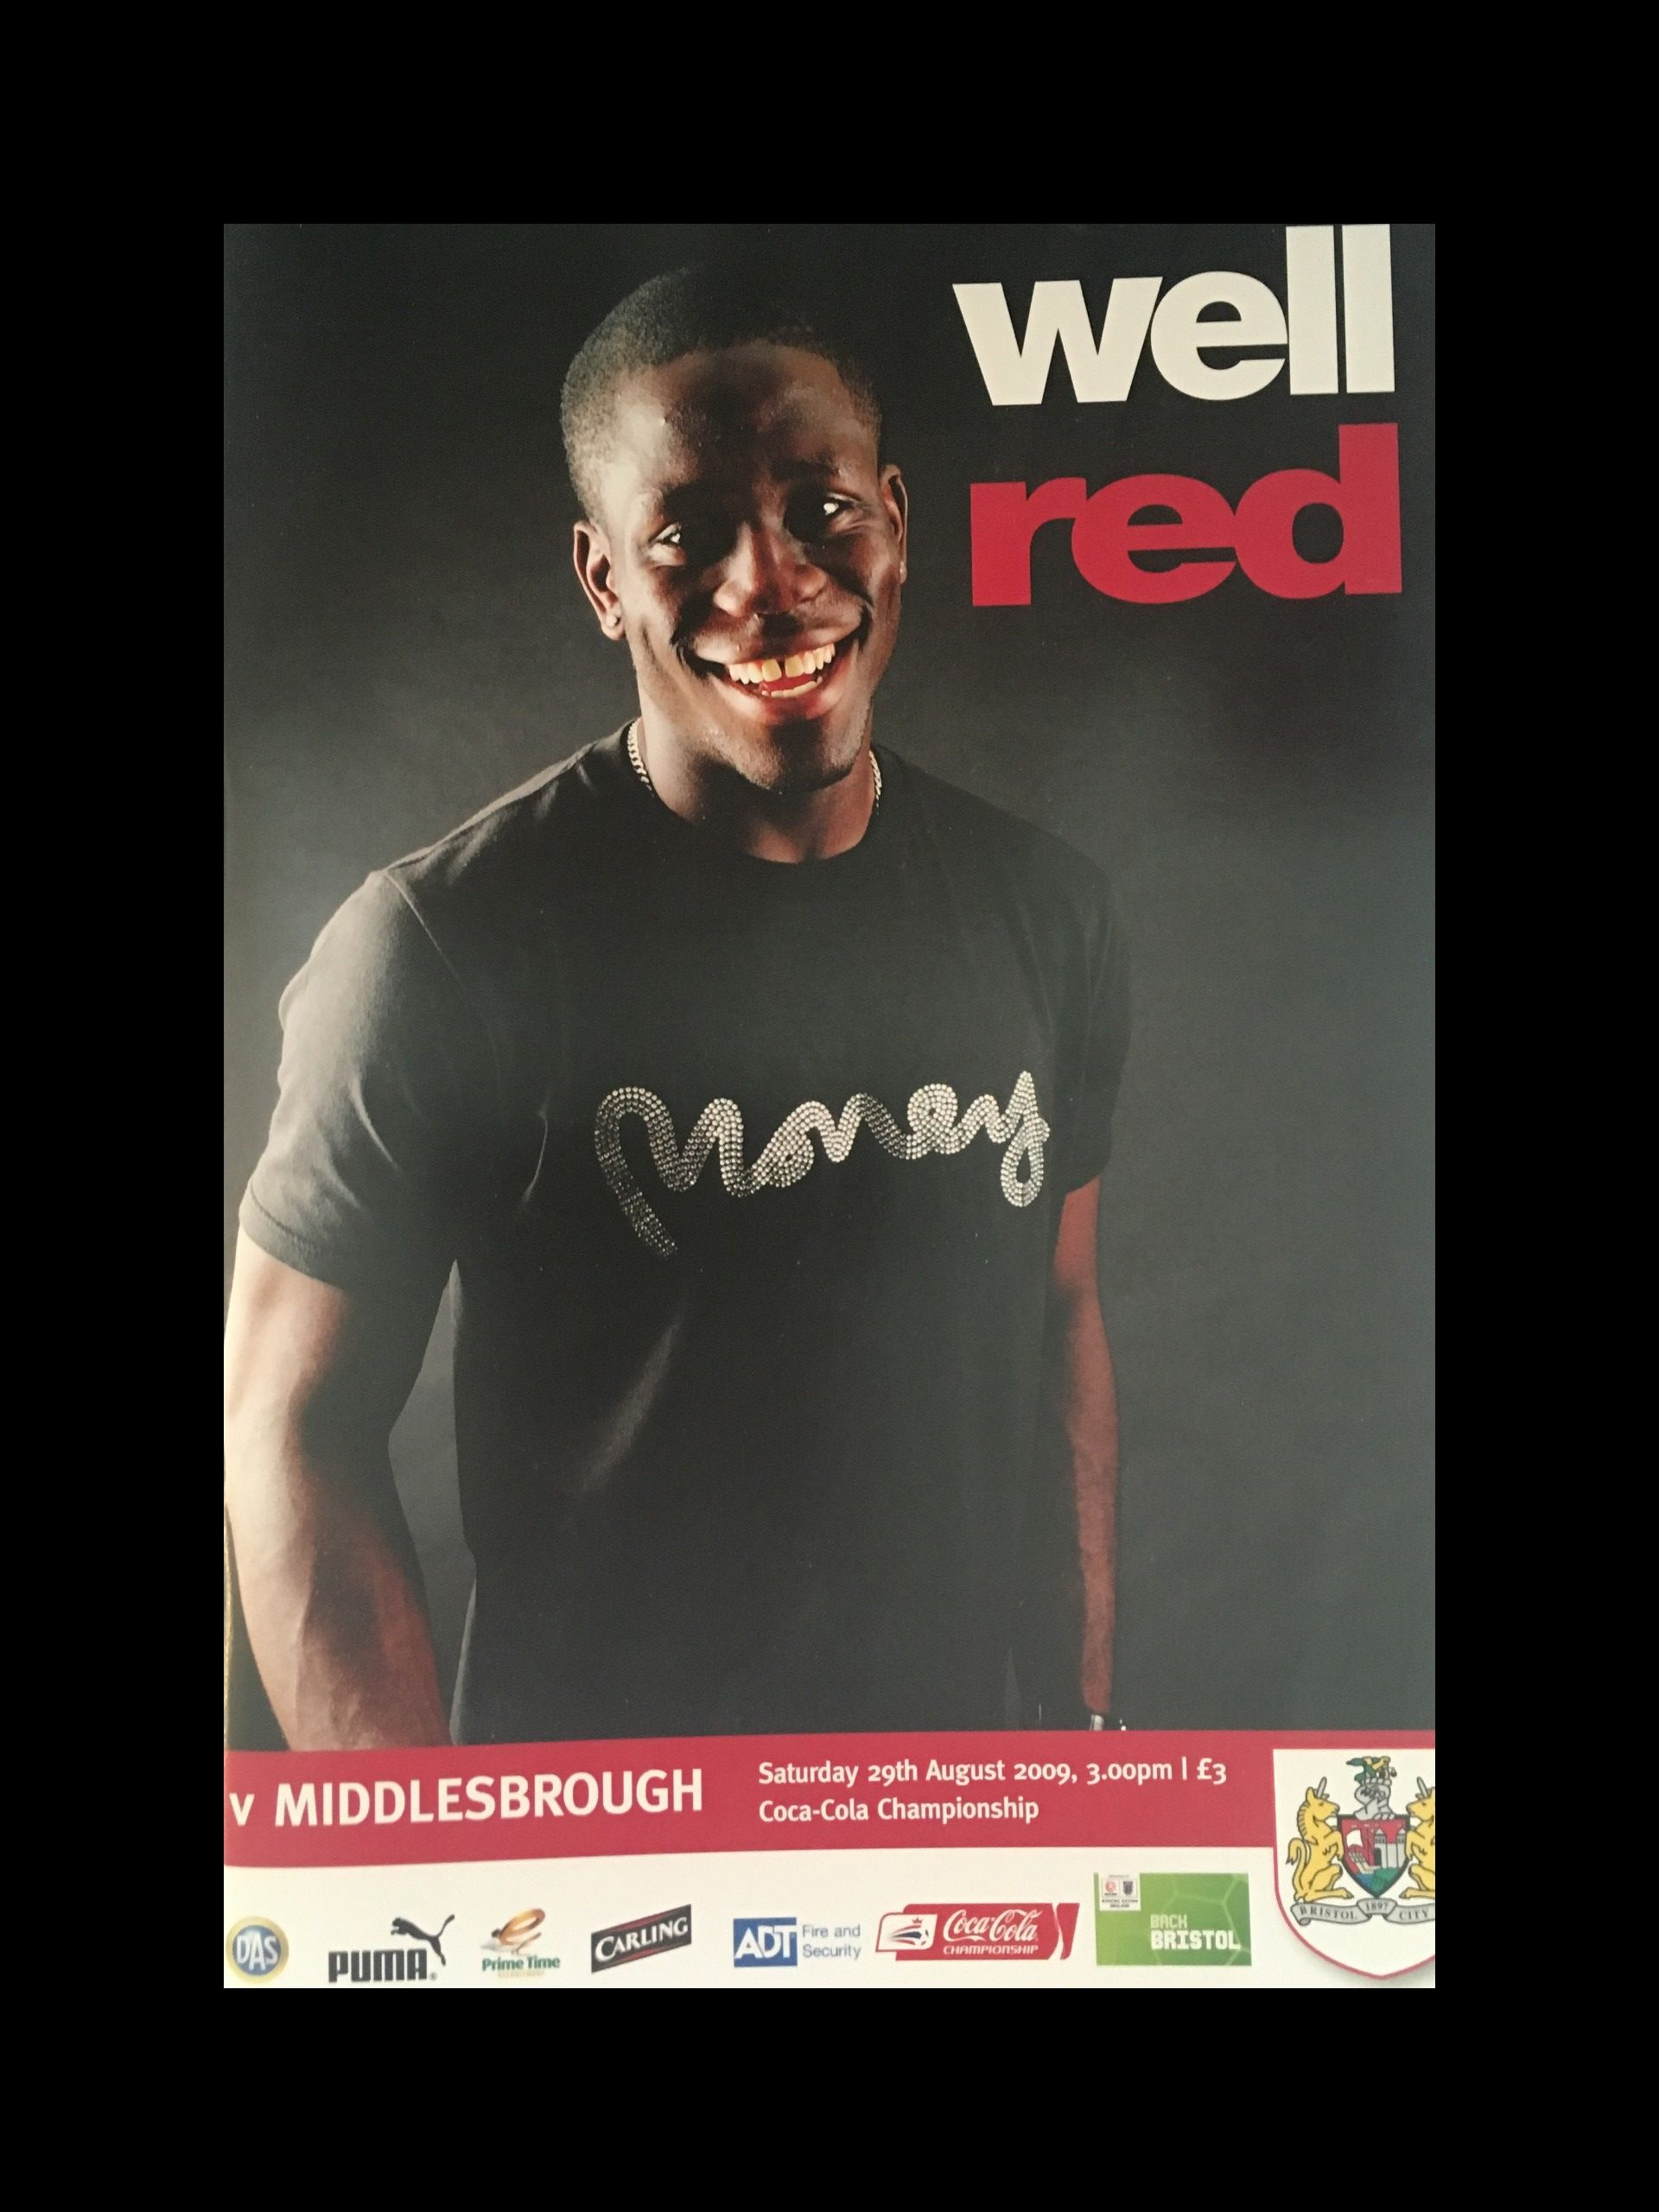 Bristol City v Middlesbrough 29-08-2009 Programme